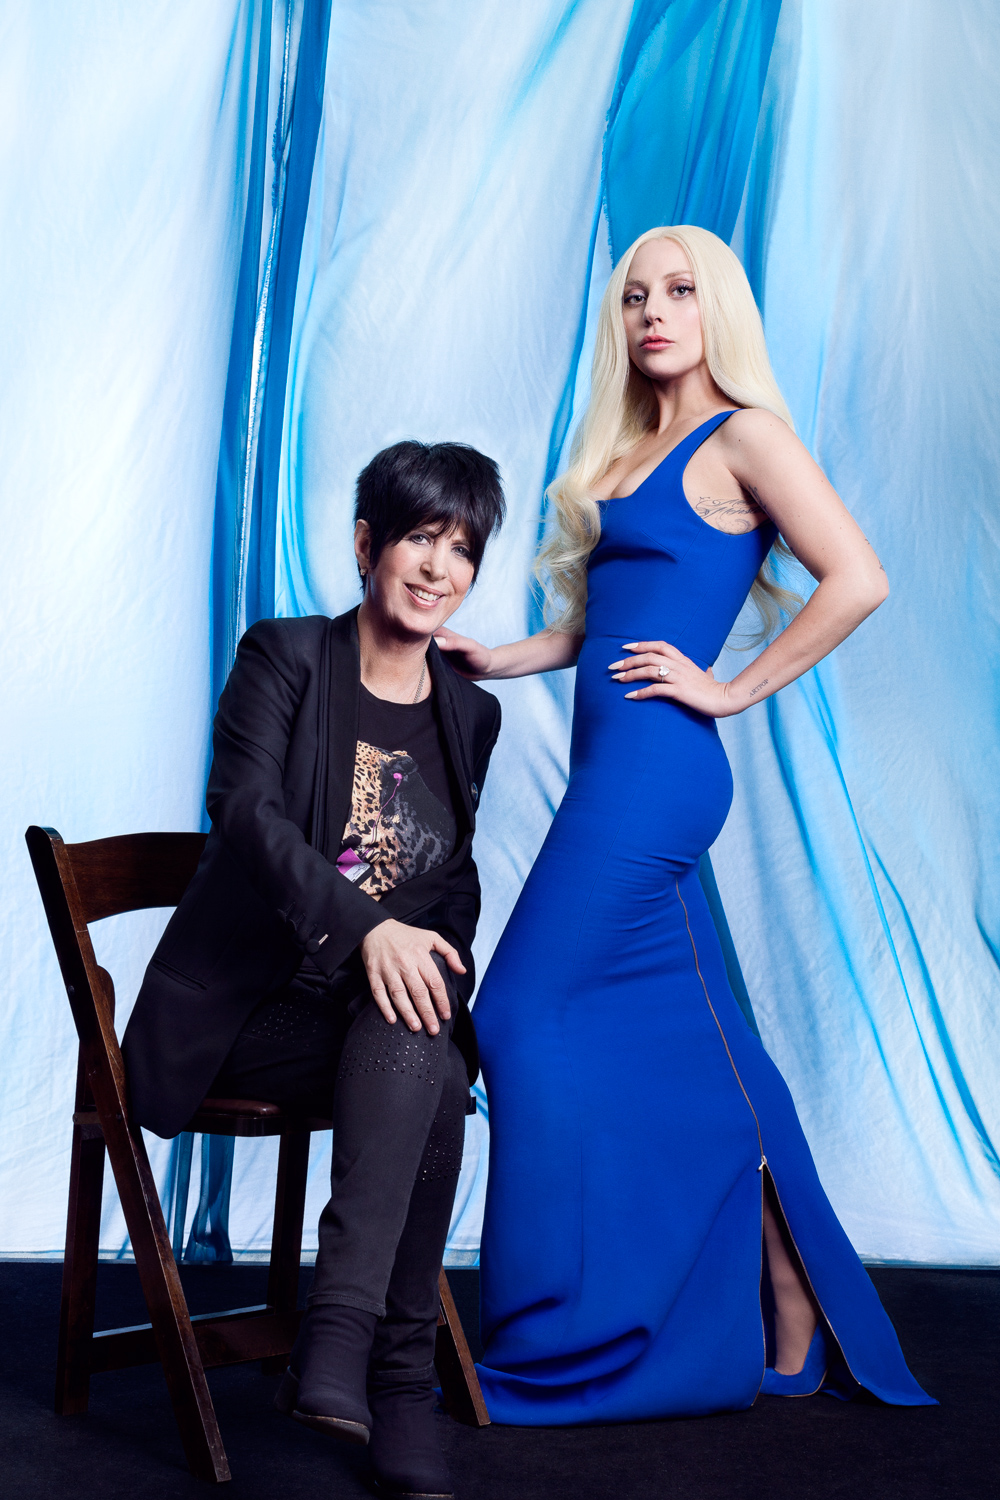 LADY_GAGA_DIANE_WARREN_0081(FINAL_WEB).jpg